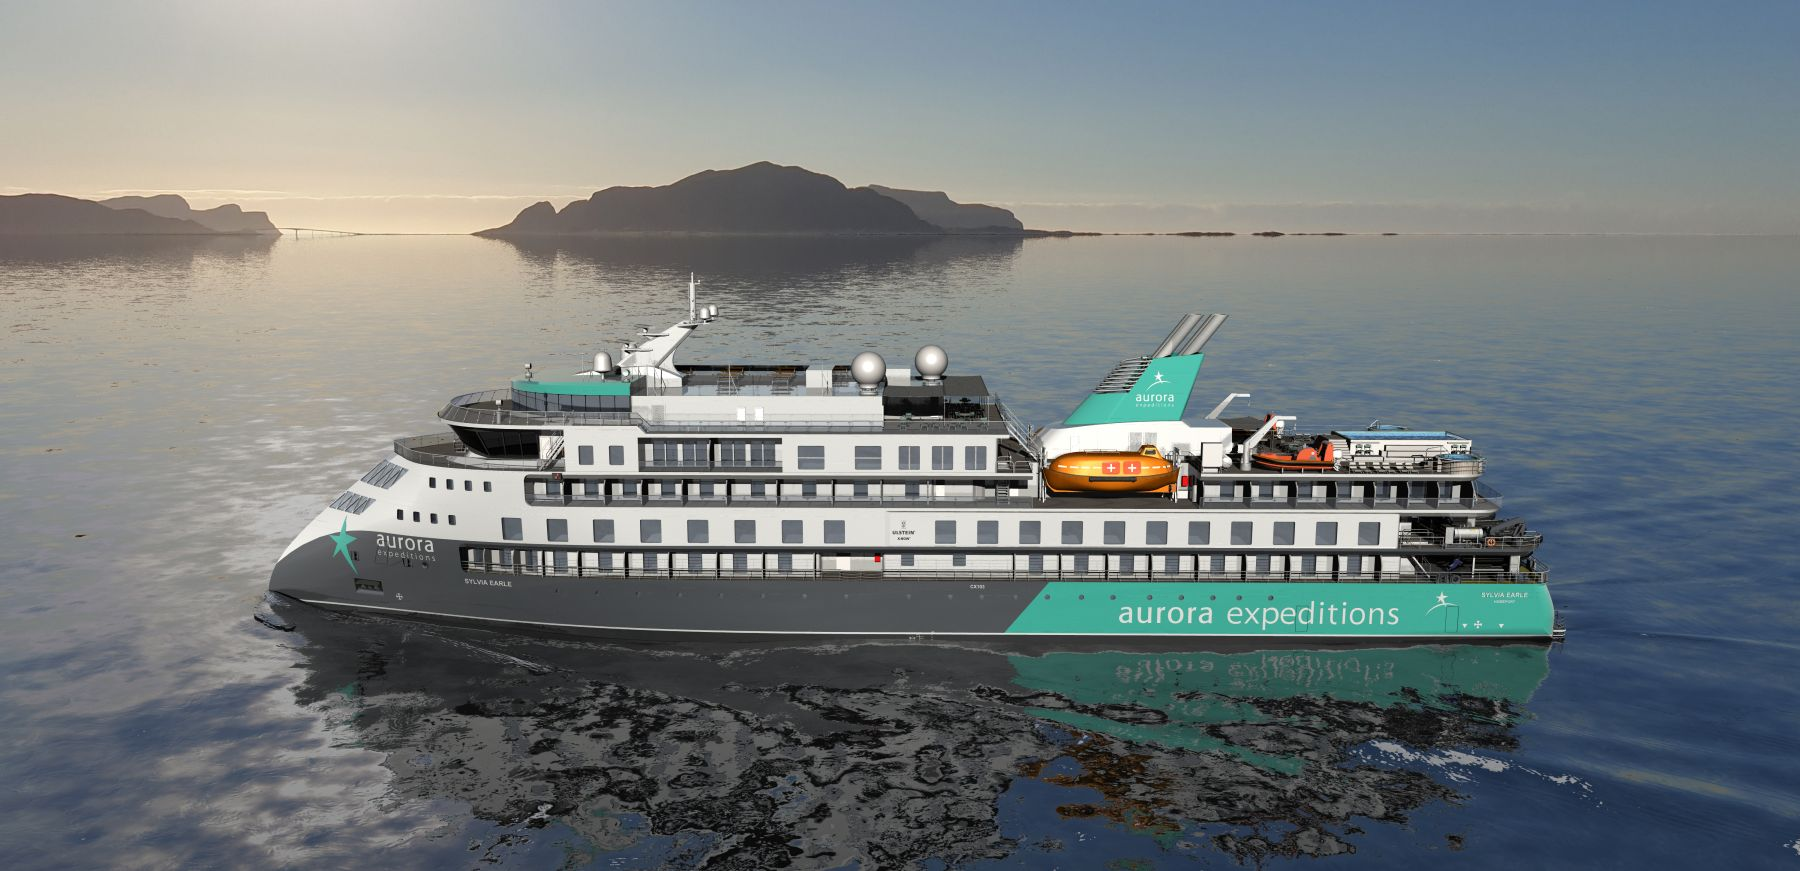 Australian expedition operator Aurora Expeditions is offering a unique opportunity to explore Baja California with world-renowned marine conservationist, biologist, oceanographer, and explorer Dr. Sylvia Earle.